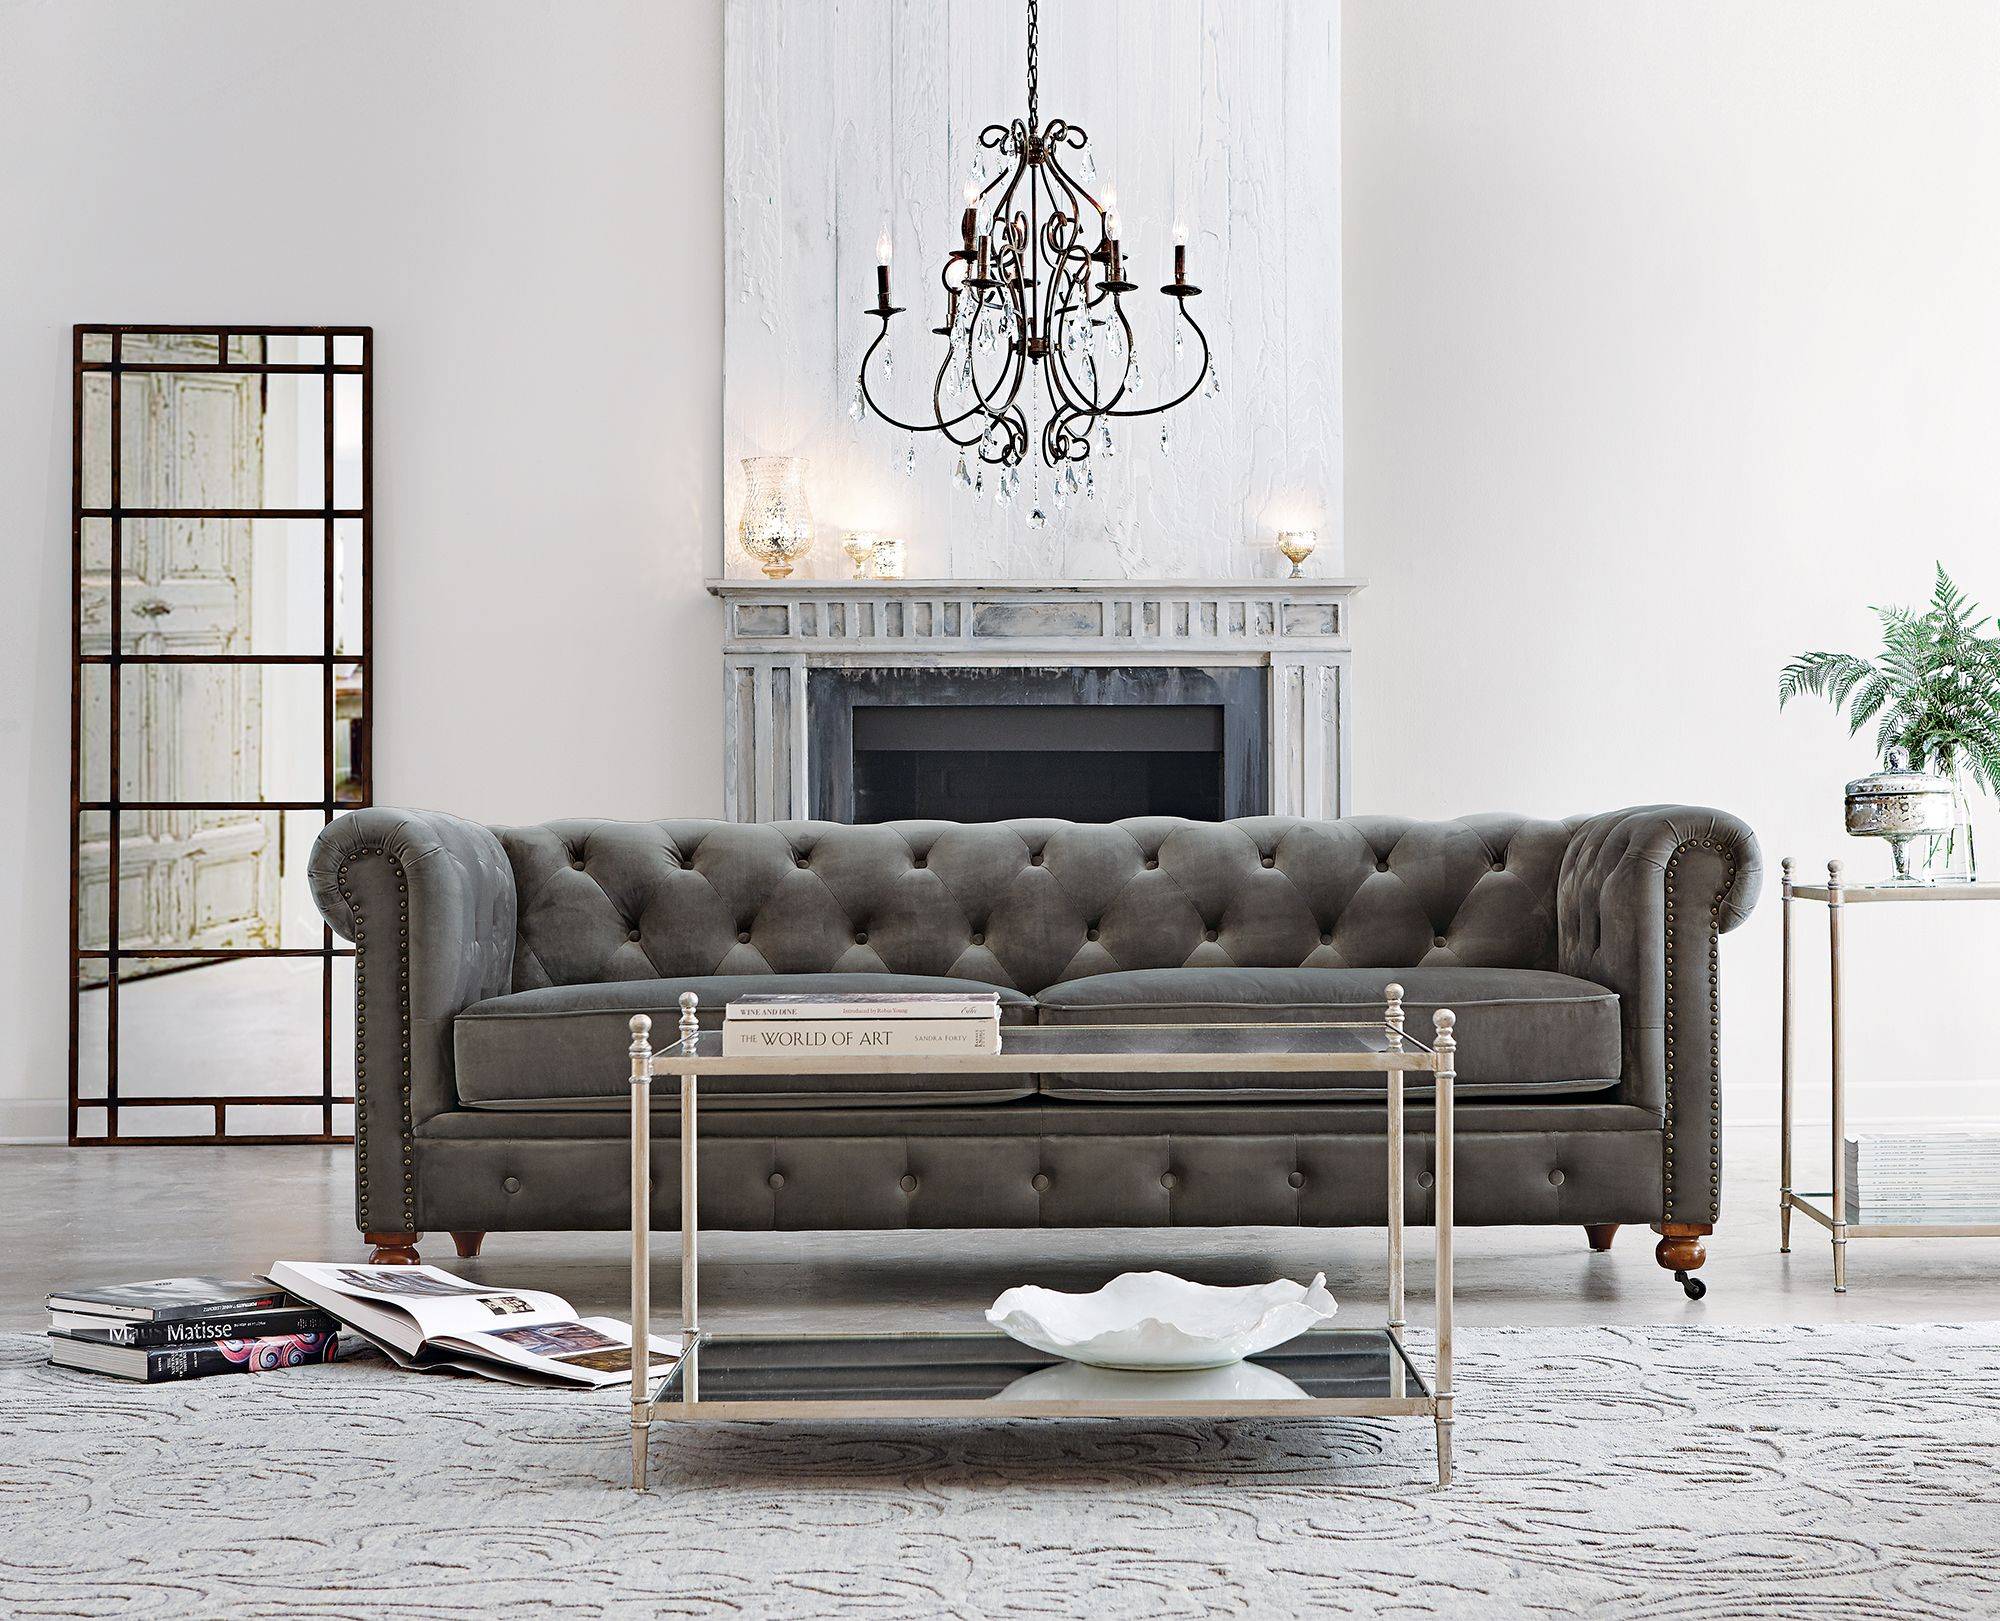 velvet grey tufted sofa olivia set our favorite gordon now comes in